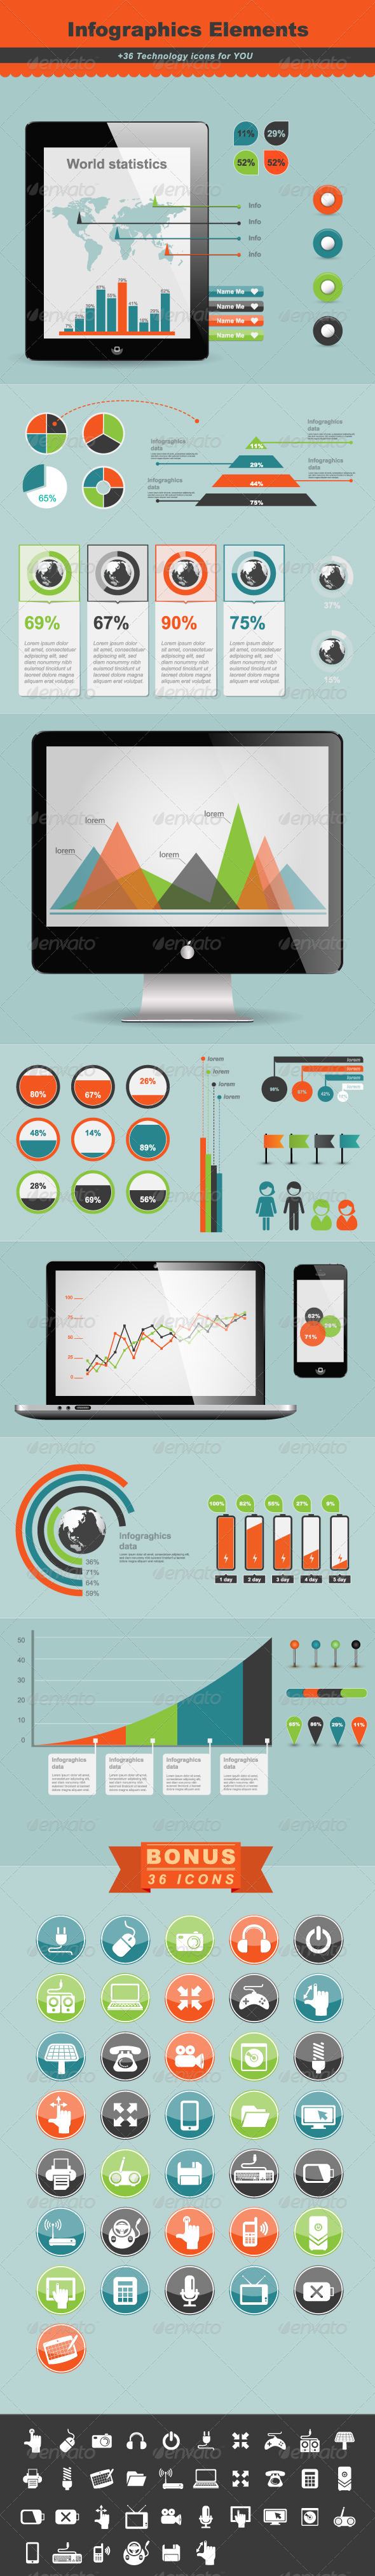 Technology Infographic Elements - Infographics